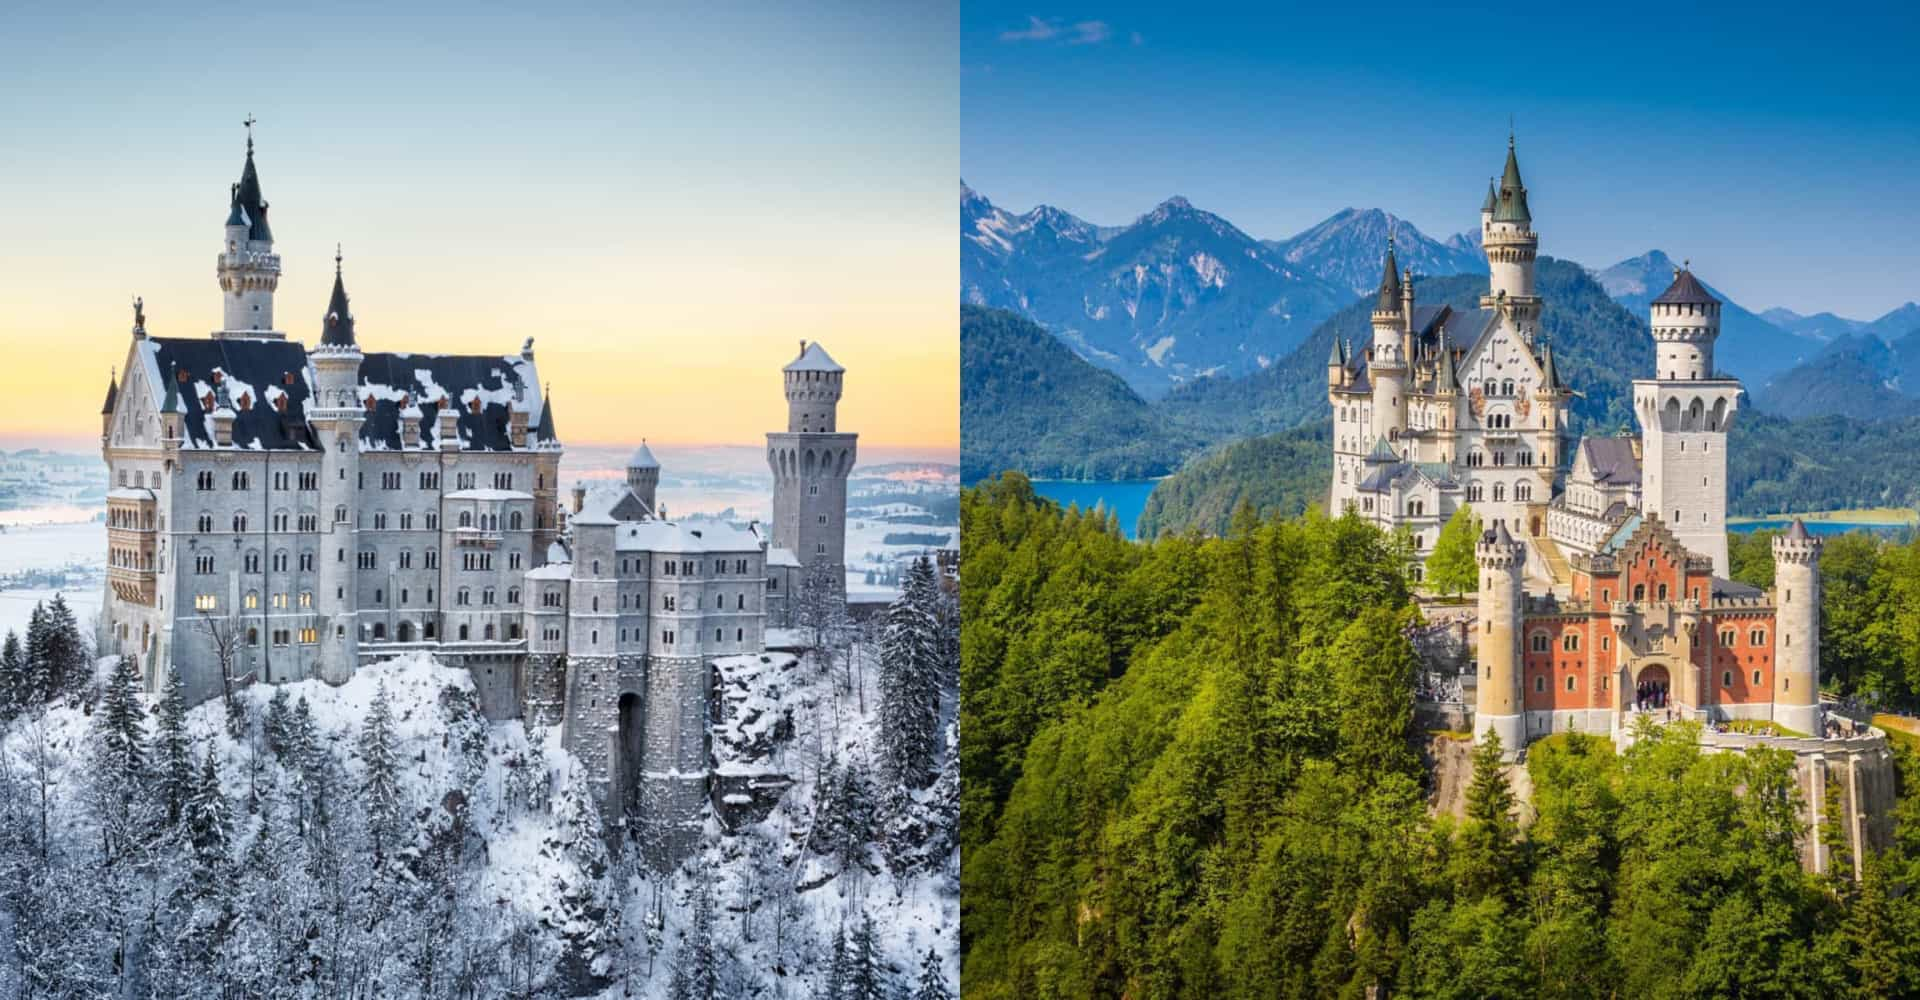 The world's biggest tourist attractions in winter and summer